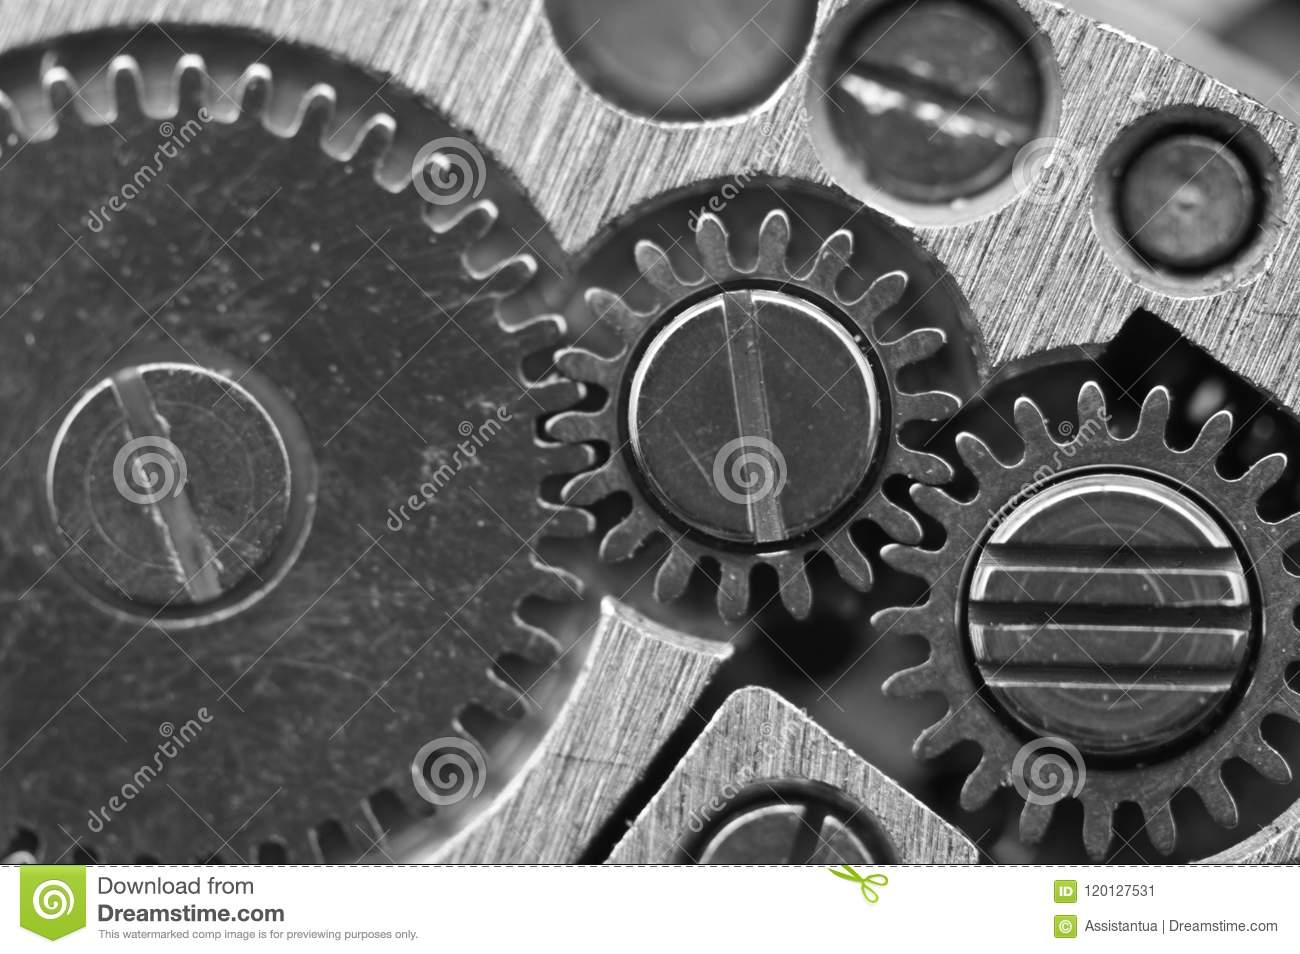 Macro. Black and white background. Metal close-up background of